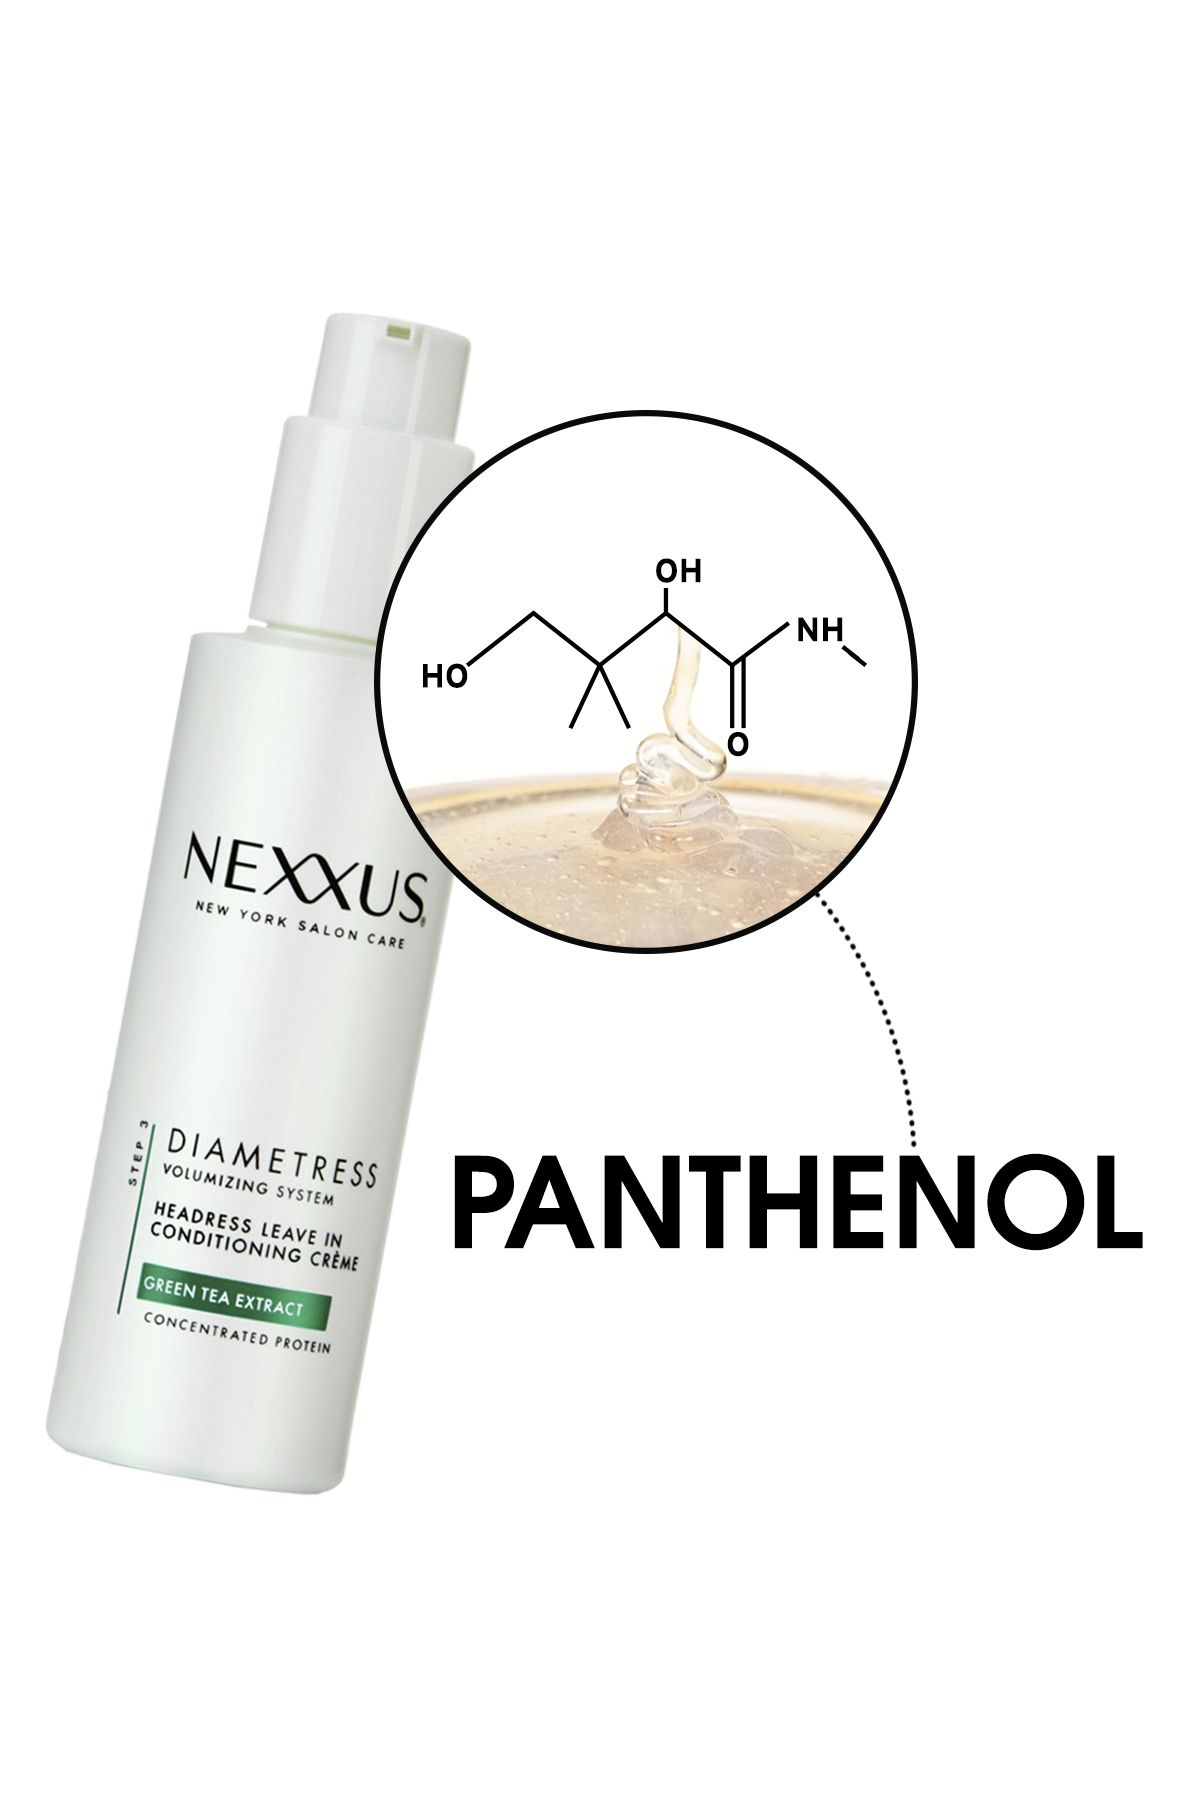 """THE SCIENCE: Because lack of moisture can cause strands to get thinner, panthenol """"helps strands retain water, increasing their actual diameter,"""" explains Minar.   SCIENCE, DECODED: Panthenol plumps up super thin strands and boosts the thickness of your ponytail.   Try: <a href=""""http://www.nexxus.com/product/detail/890480/products-diametress-headressleaveinconditioningcreme"""" target=""""_blank"""">Nexxus Diametress Headress Leave In Conditioning Créme</a>"""